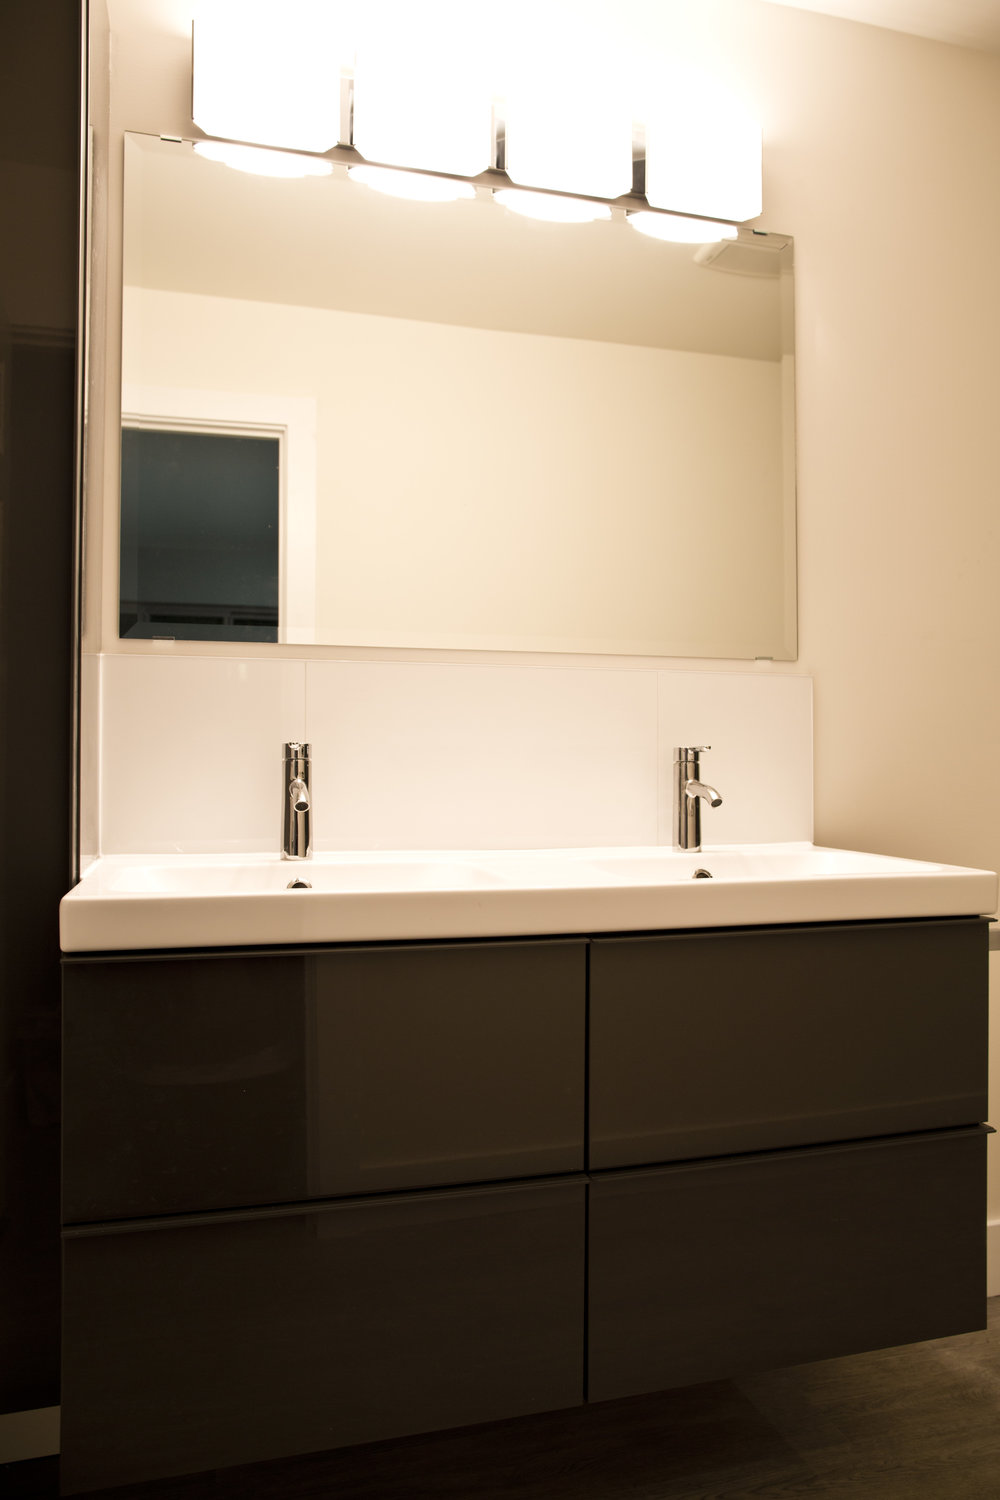 Master Bathroom - Clean lines and high contrast, modern cabinets create a stunning space.